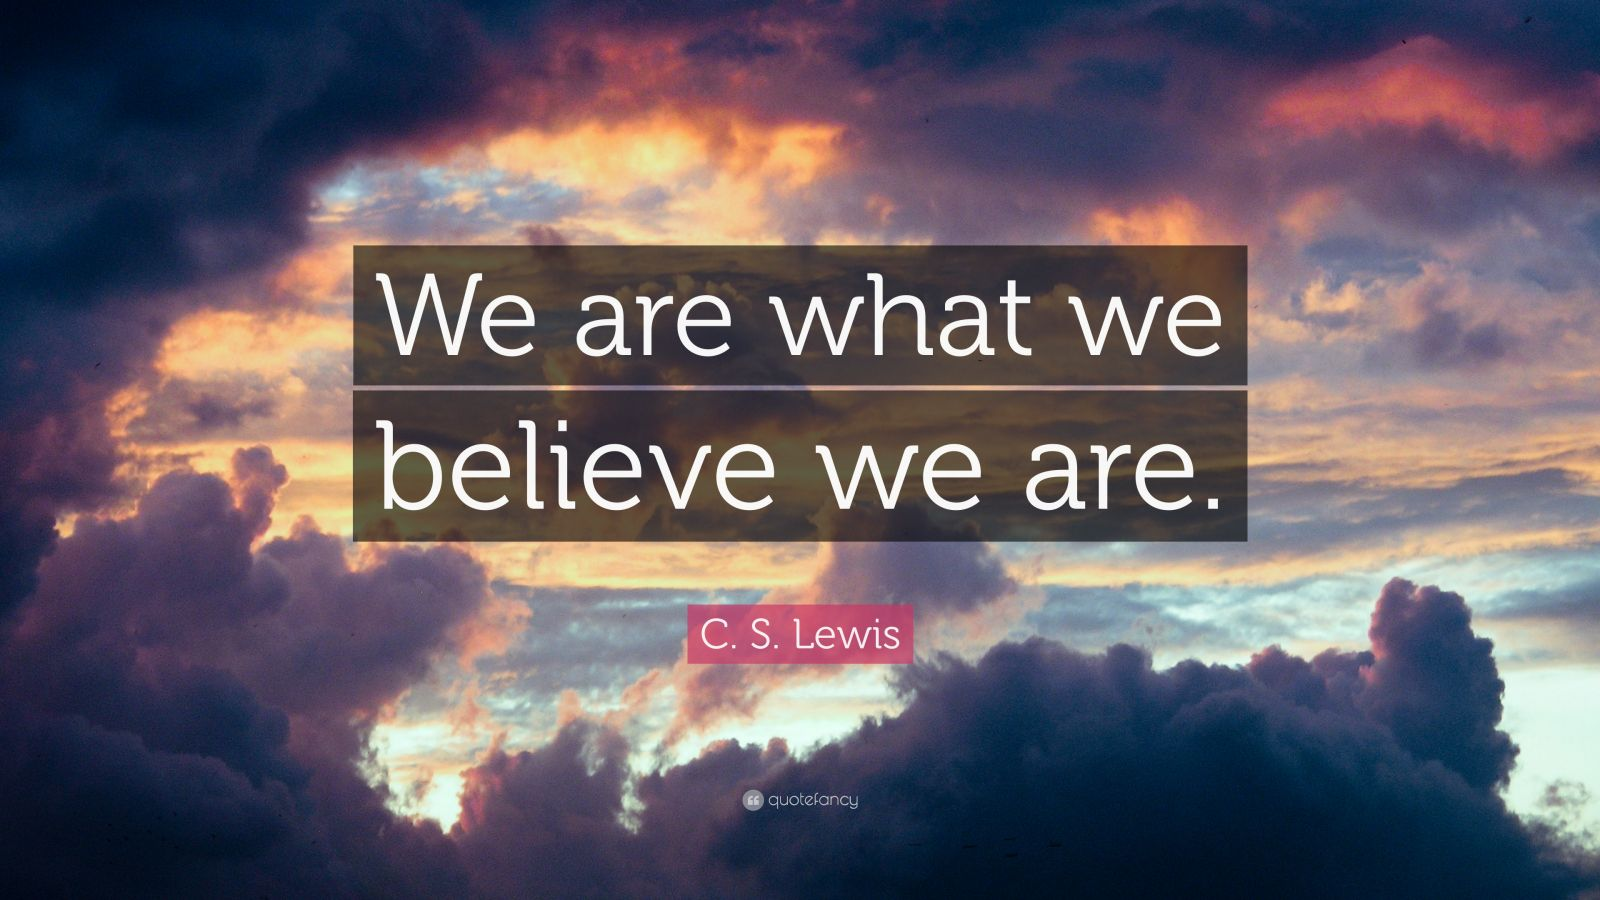 Reading Quotes Wallpaper C S Lewis Quote We Are What We Believe We Are 21